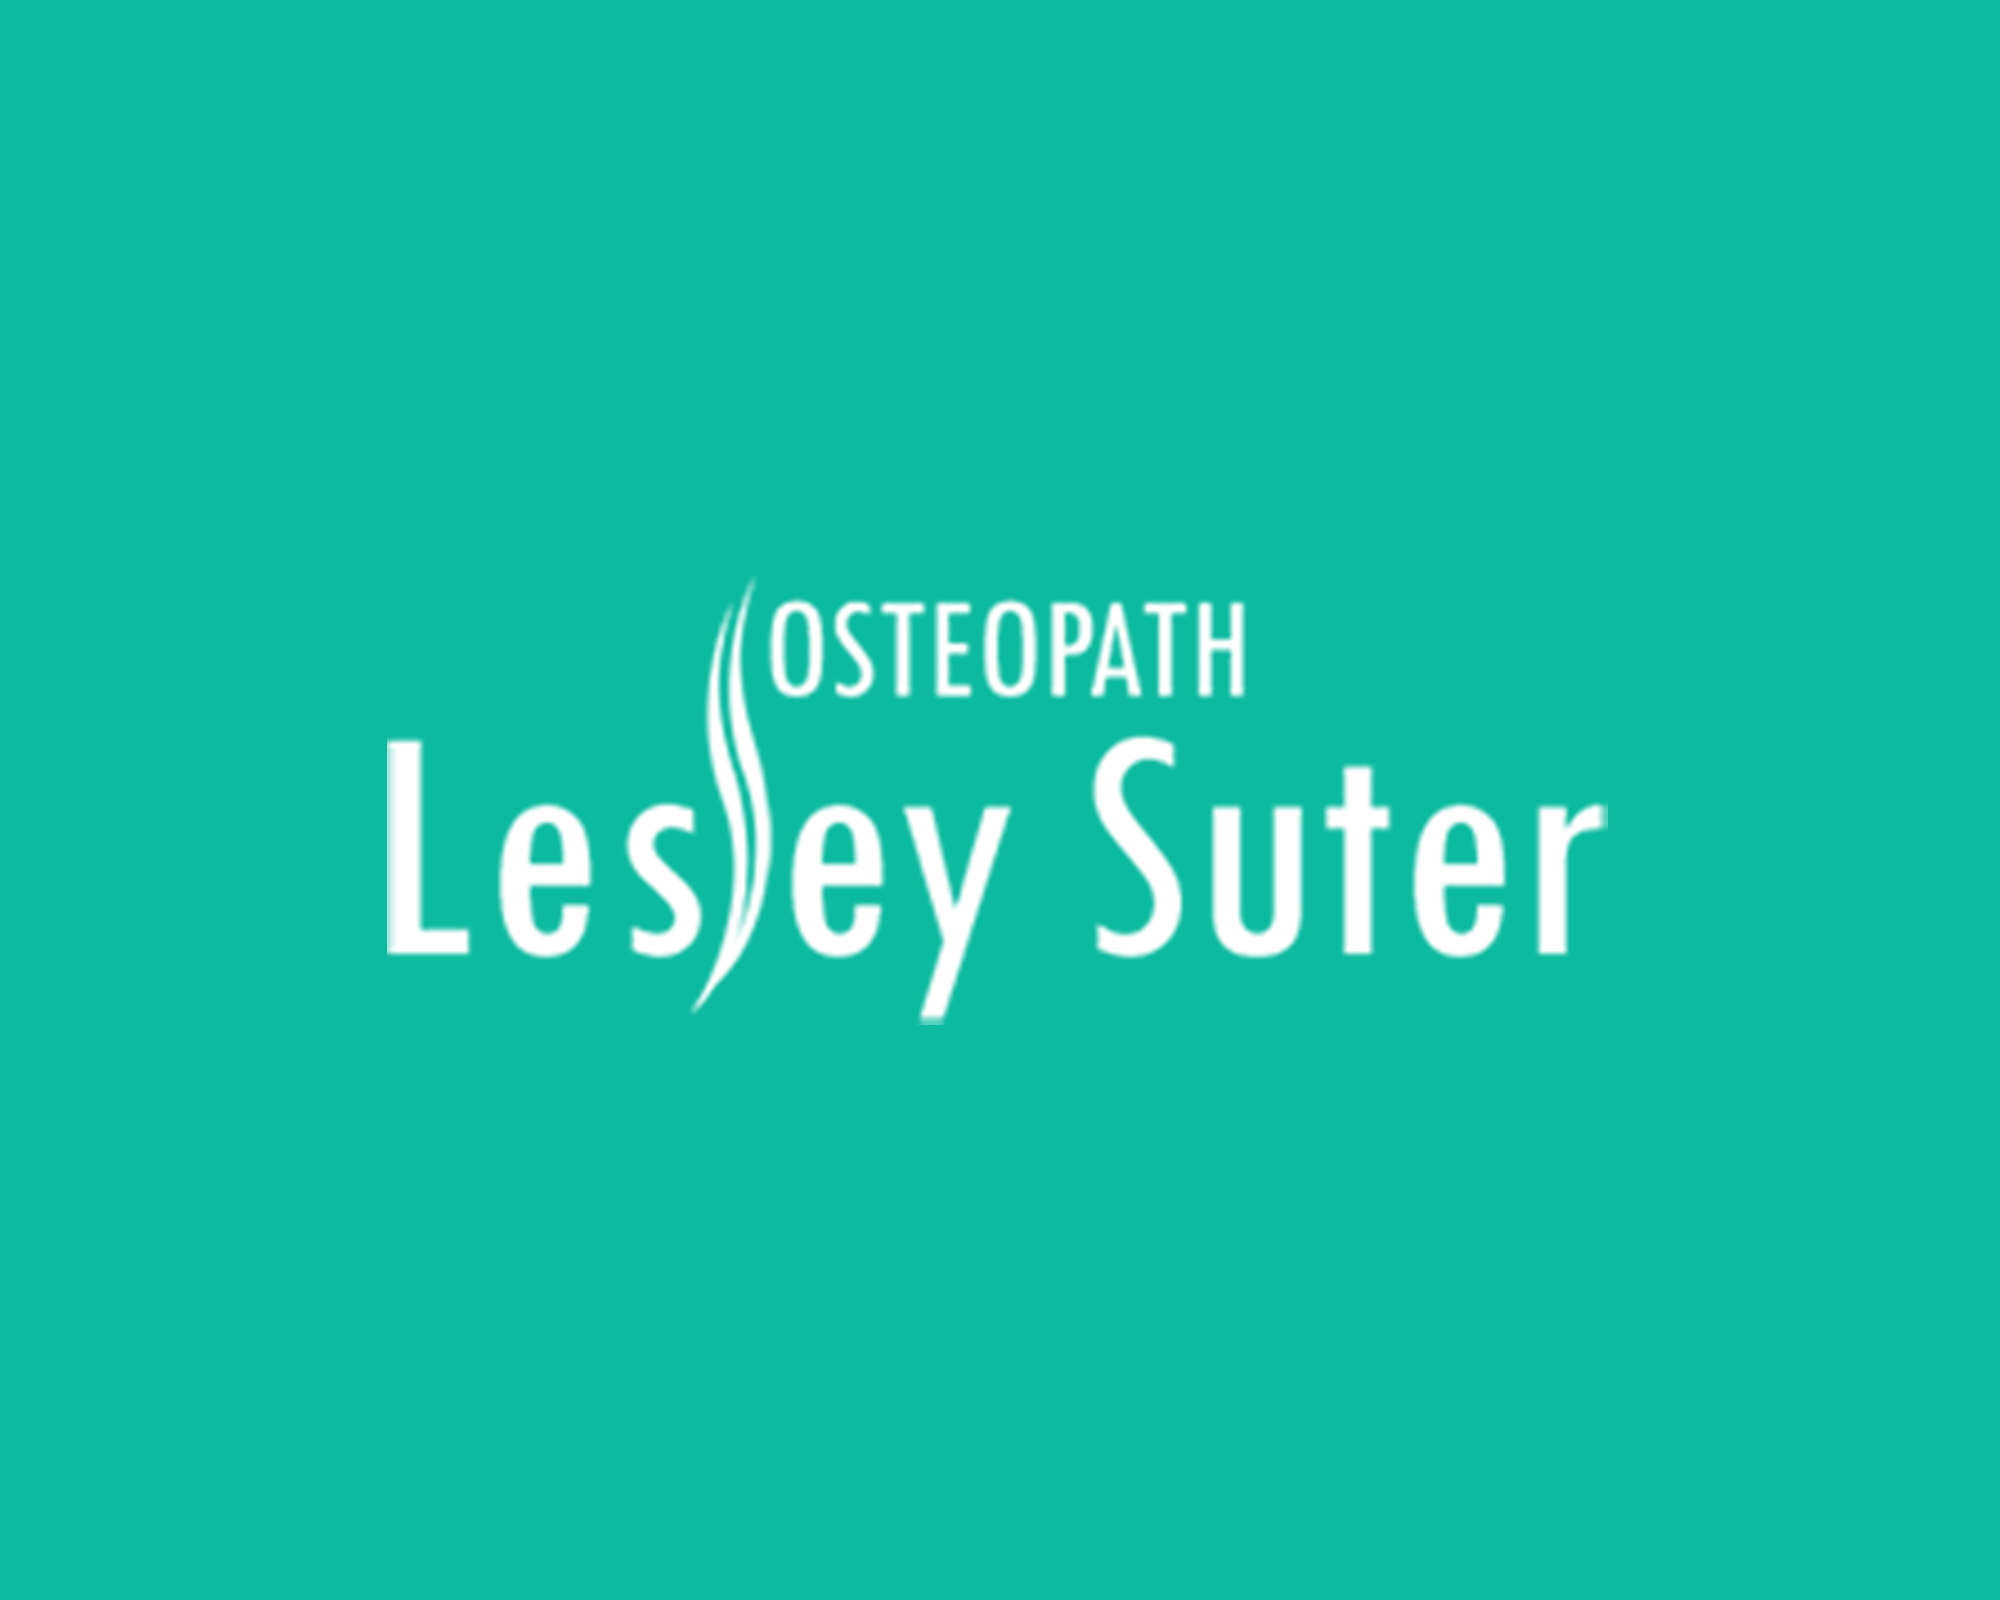 osteopath lesley suter Logo